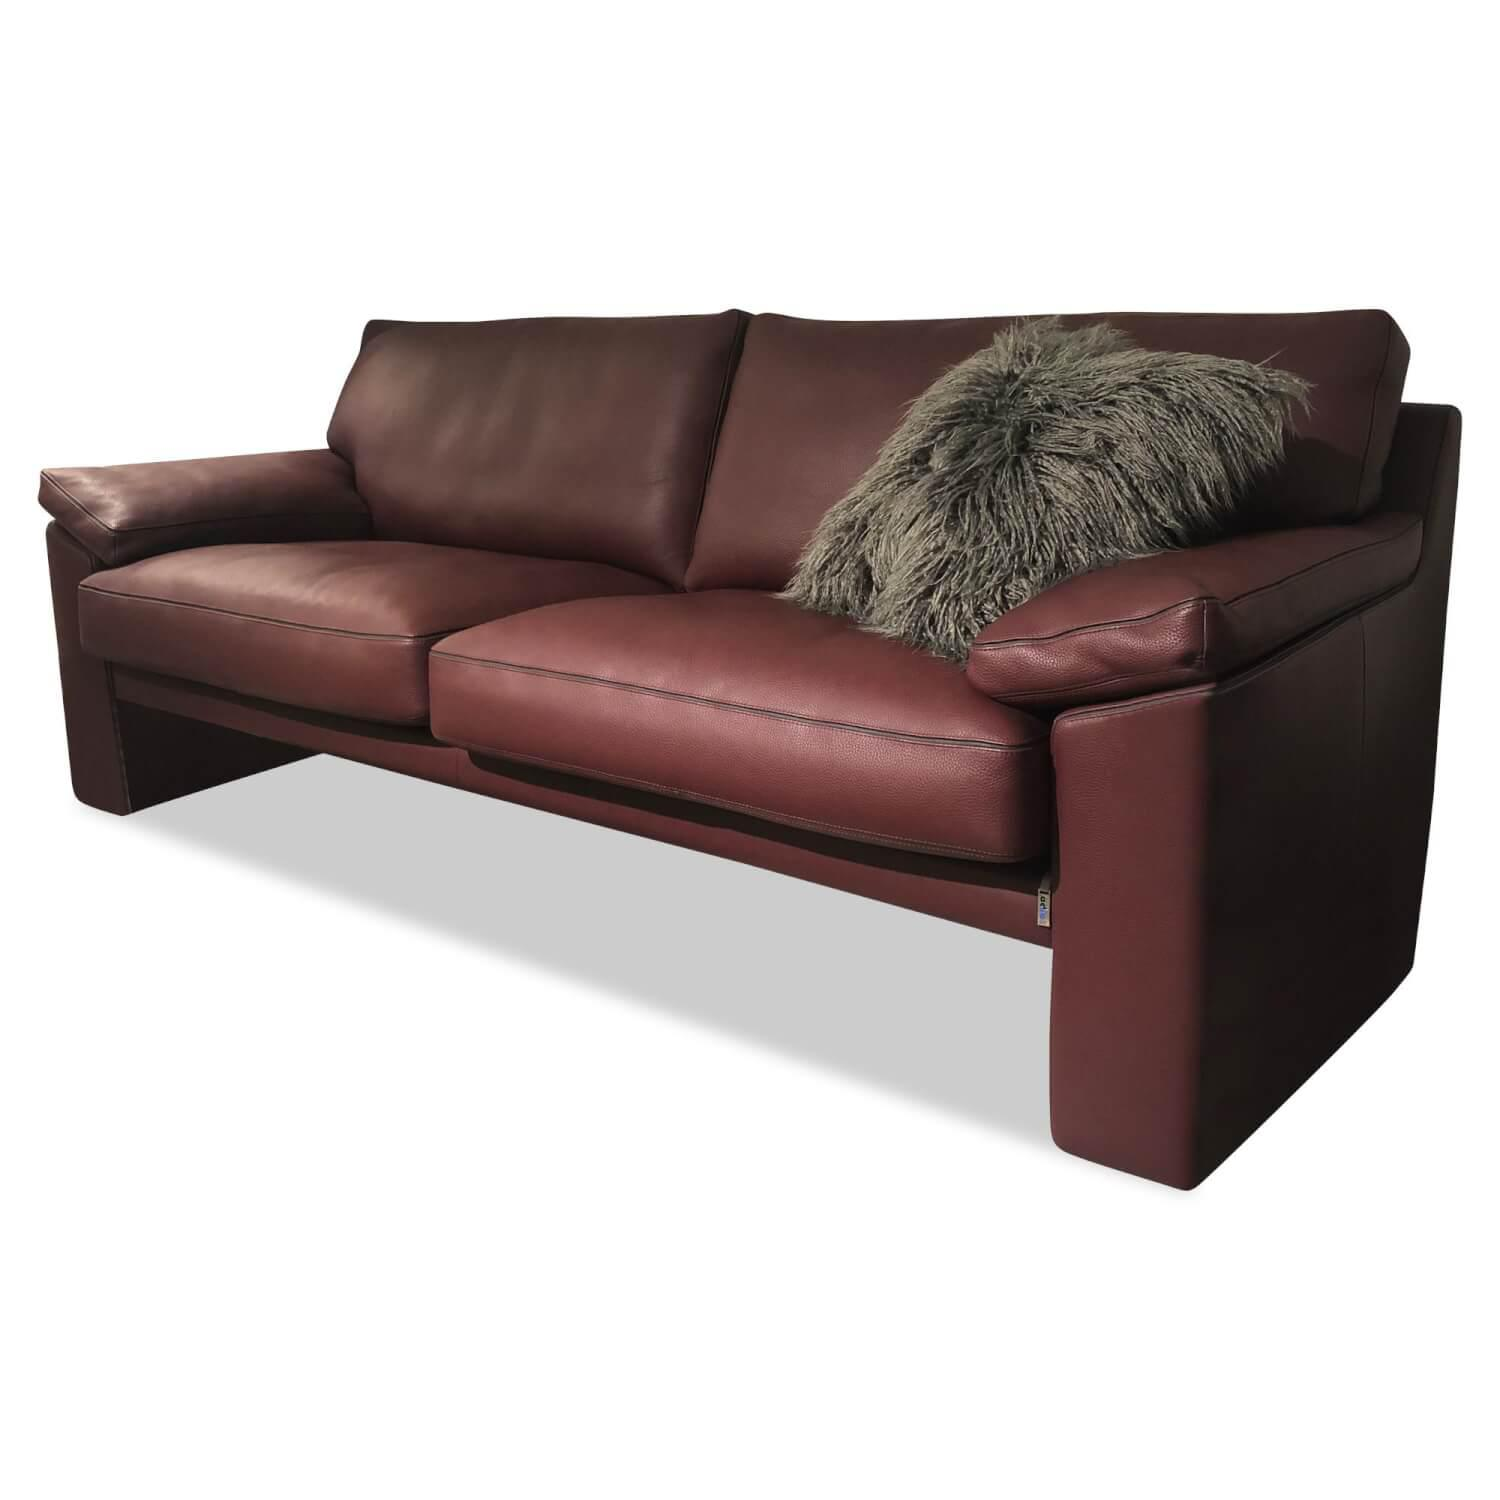 Full Size of Erpo Sofa Classic Leder 43155 Bordeaurot Sofas Gnstig Led Spannbezug Big Grau Alcantara Xora Alternatives Rolf Benz Schillig Gelb Antikes Inhofer Kissen Home Sofa Erpo Sofa